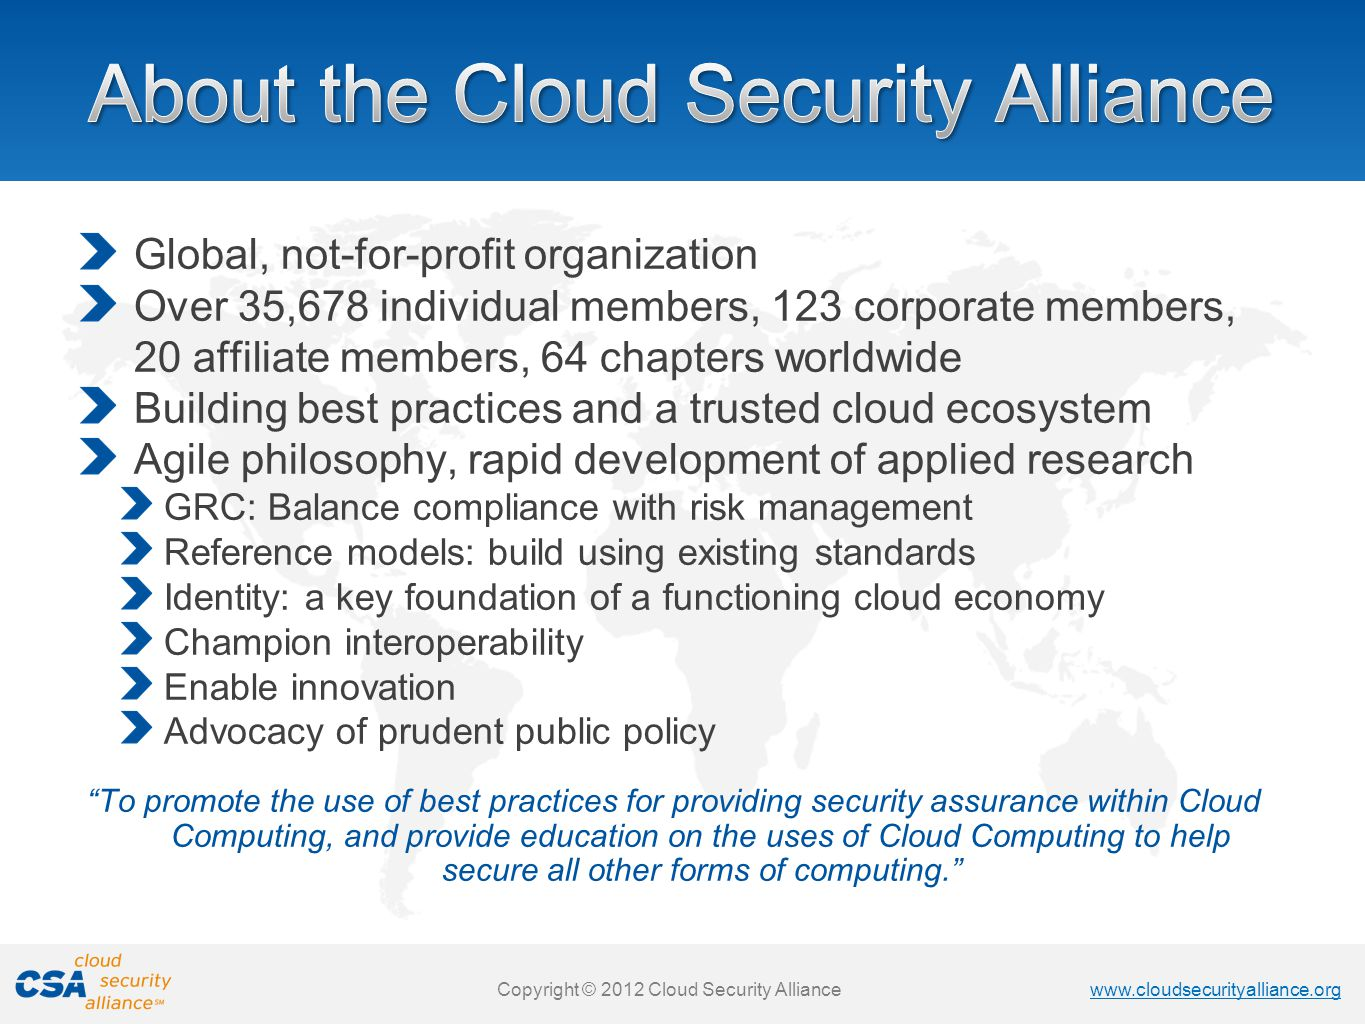 www.cloudsecurityalliance.org Copyright © 2011 Cloud Security Alliance www.cloudsecurityalliance.org Copyright © 2011 Cloud Security Alliance To Promote Education, Research and Certification of Secure and Interoperable Identity Comprehensive Cloud Security Reference Architecture Assemble reference architectures with existing standards www.cloudsecurityalliance.org/trustedcloud.html